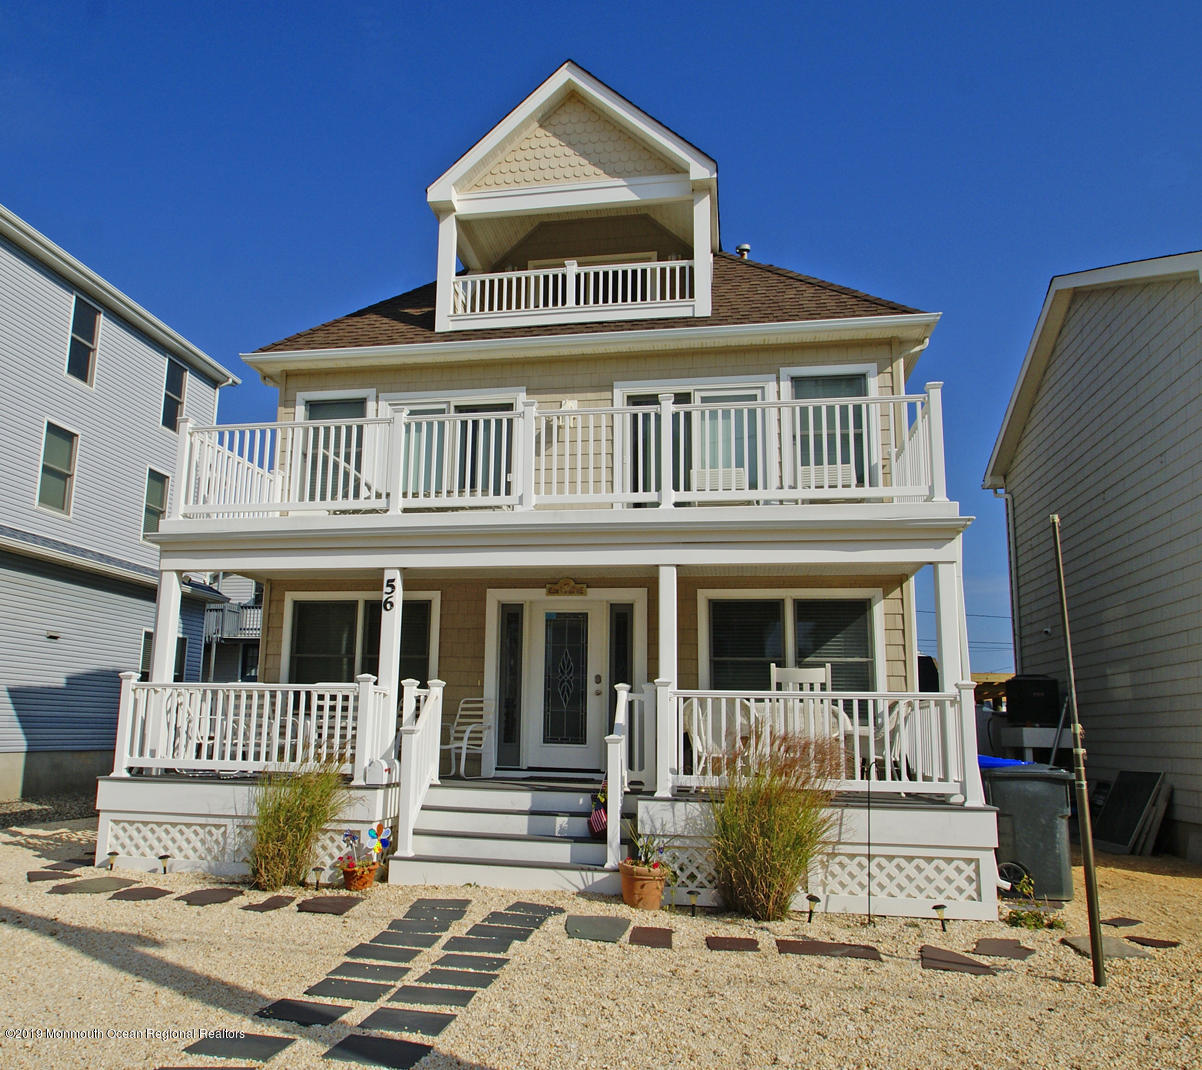 Property for sale at 56 Fort Avenue, Ortley Beach,  New Jersey 08751